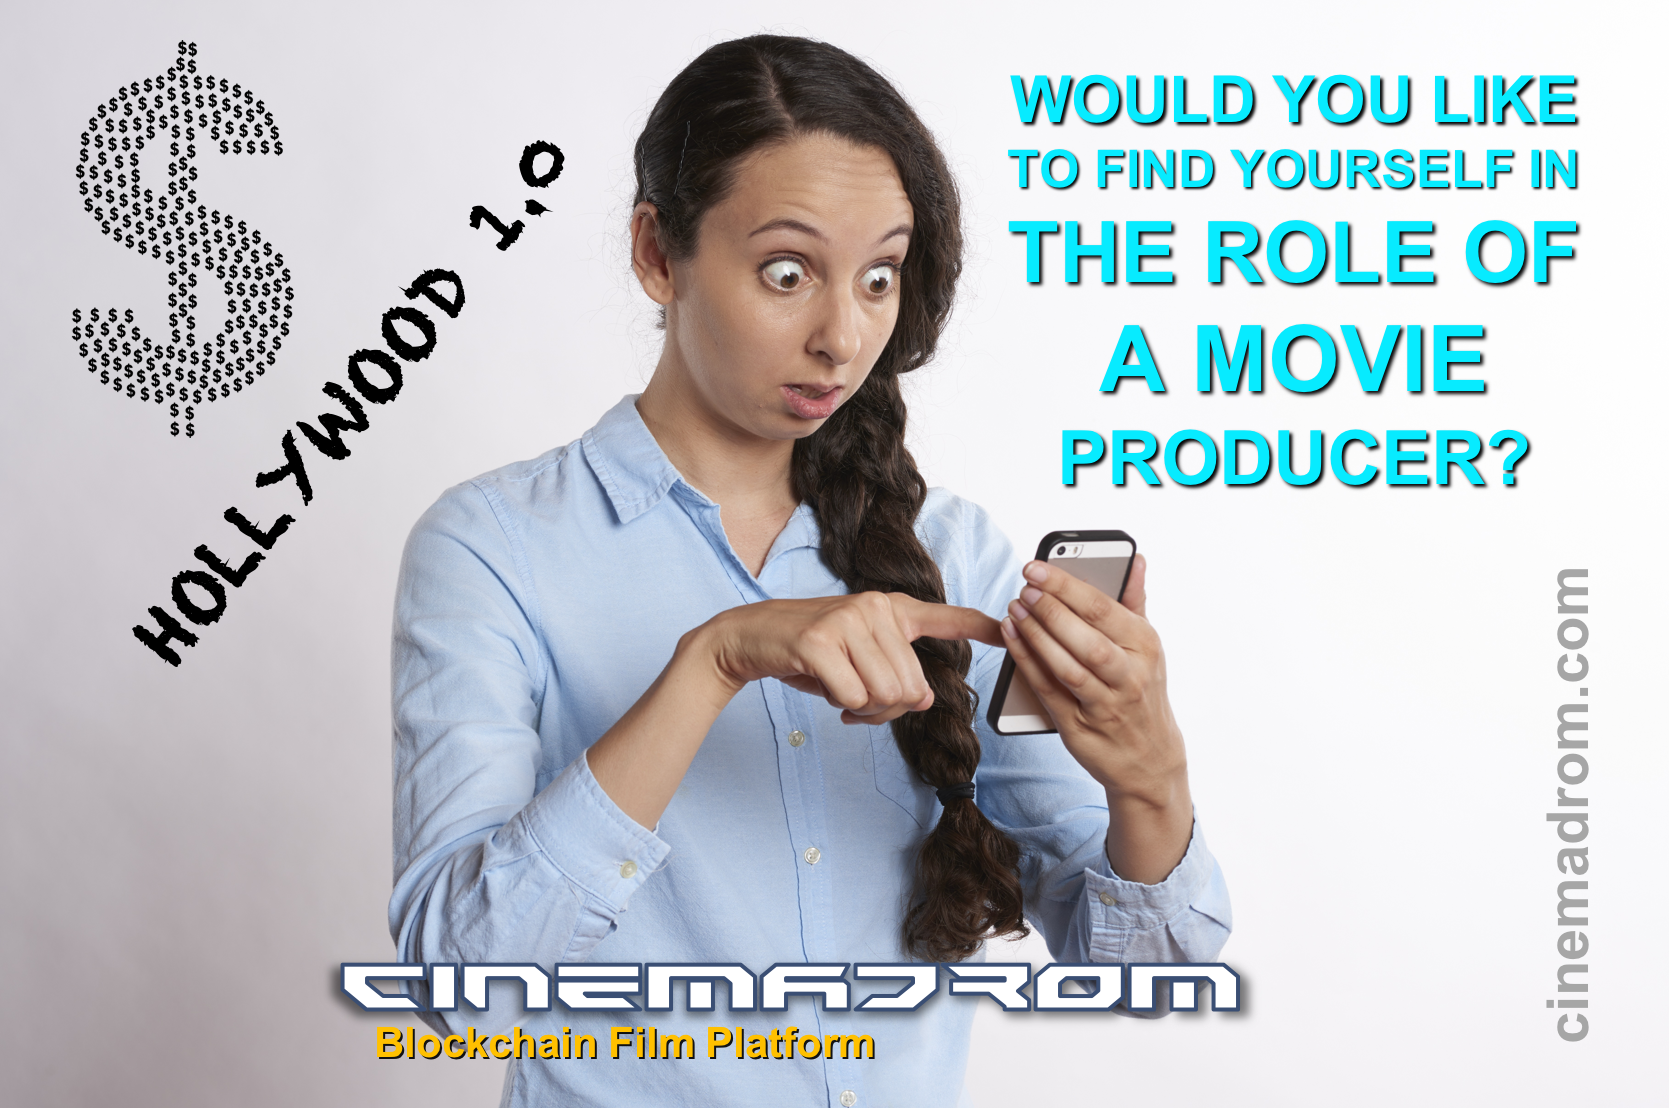 WOULD YOU LIKE TO FIND YOURSELF IN THE ROLE OF A MOVIE PRODUCER?